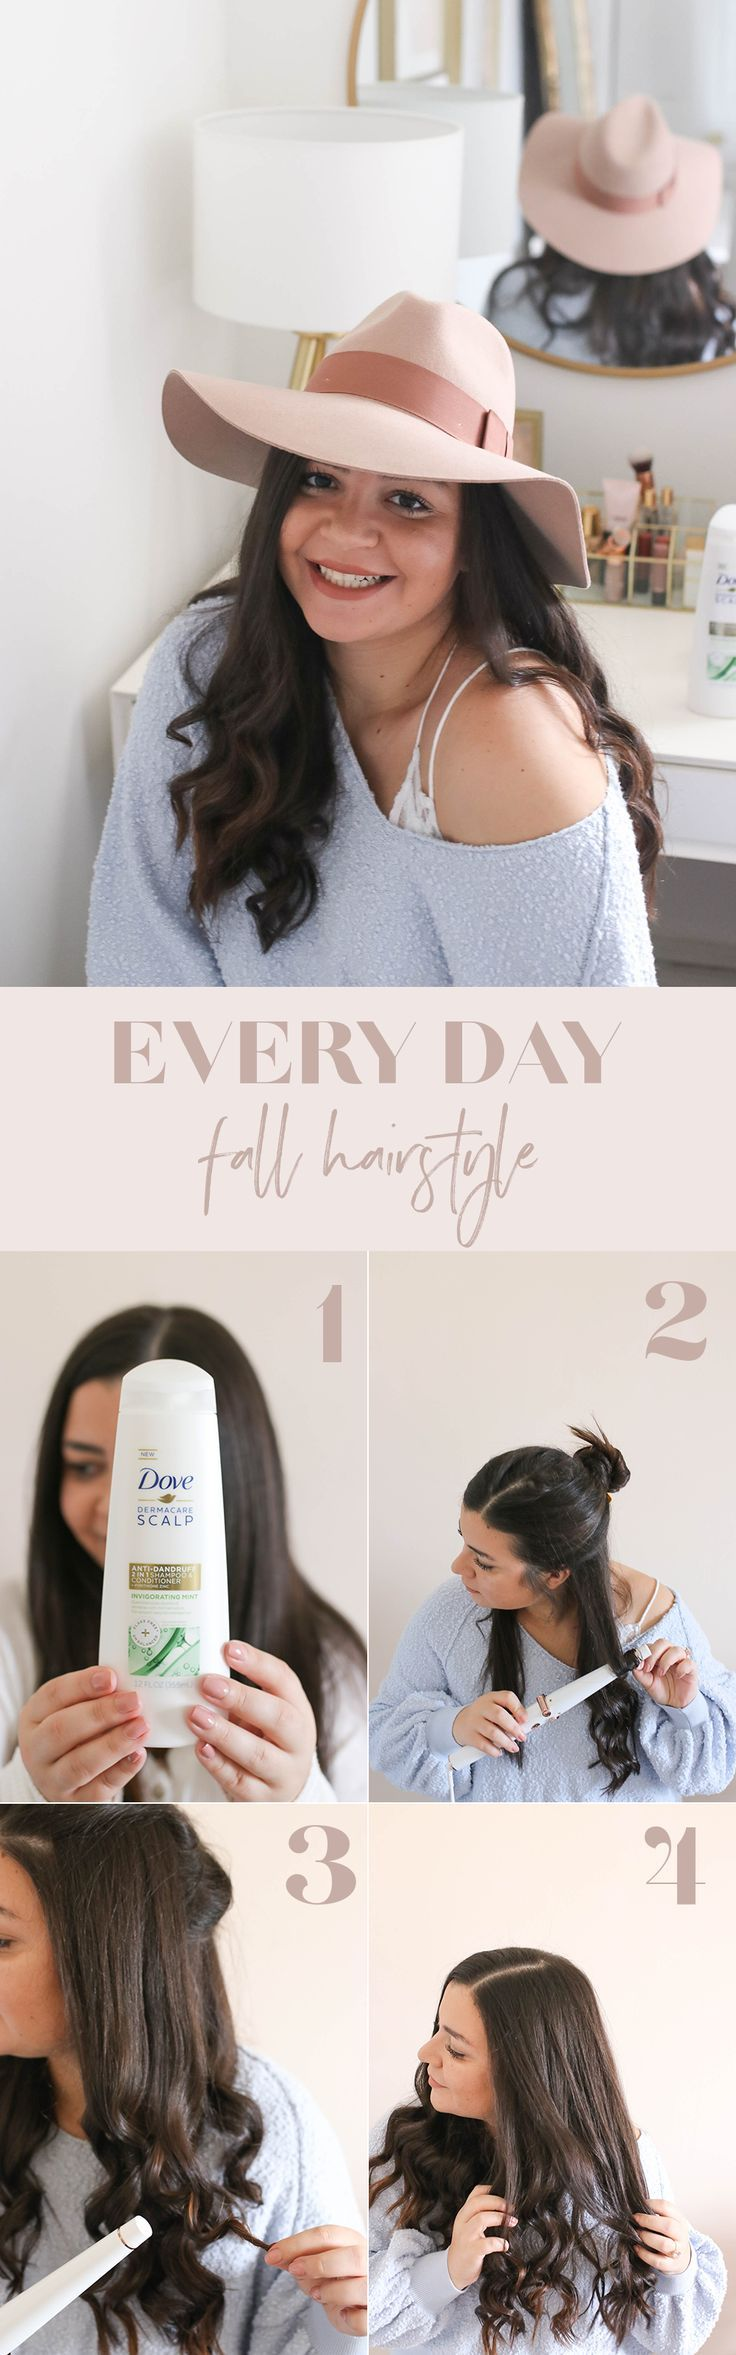 Everyday Fall Hairstyle Routine